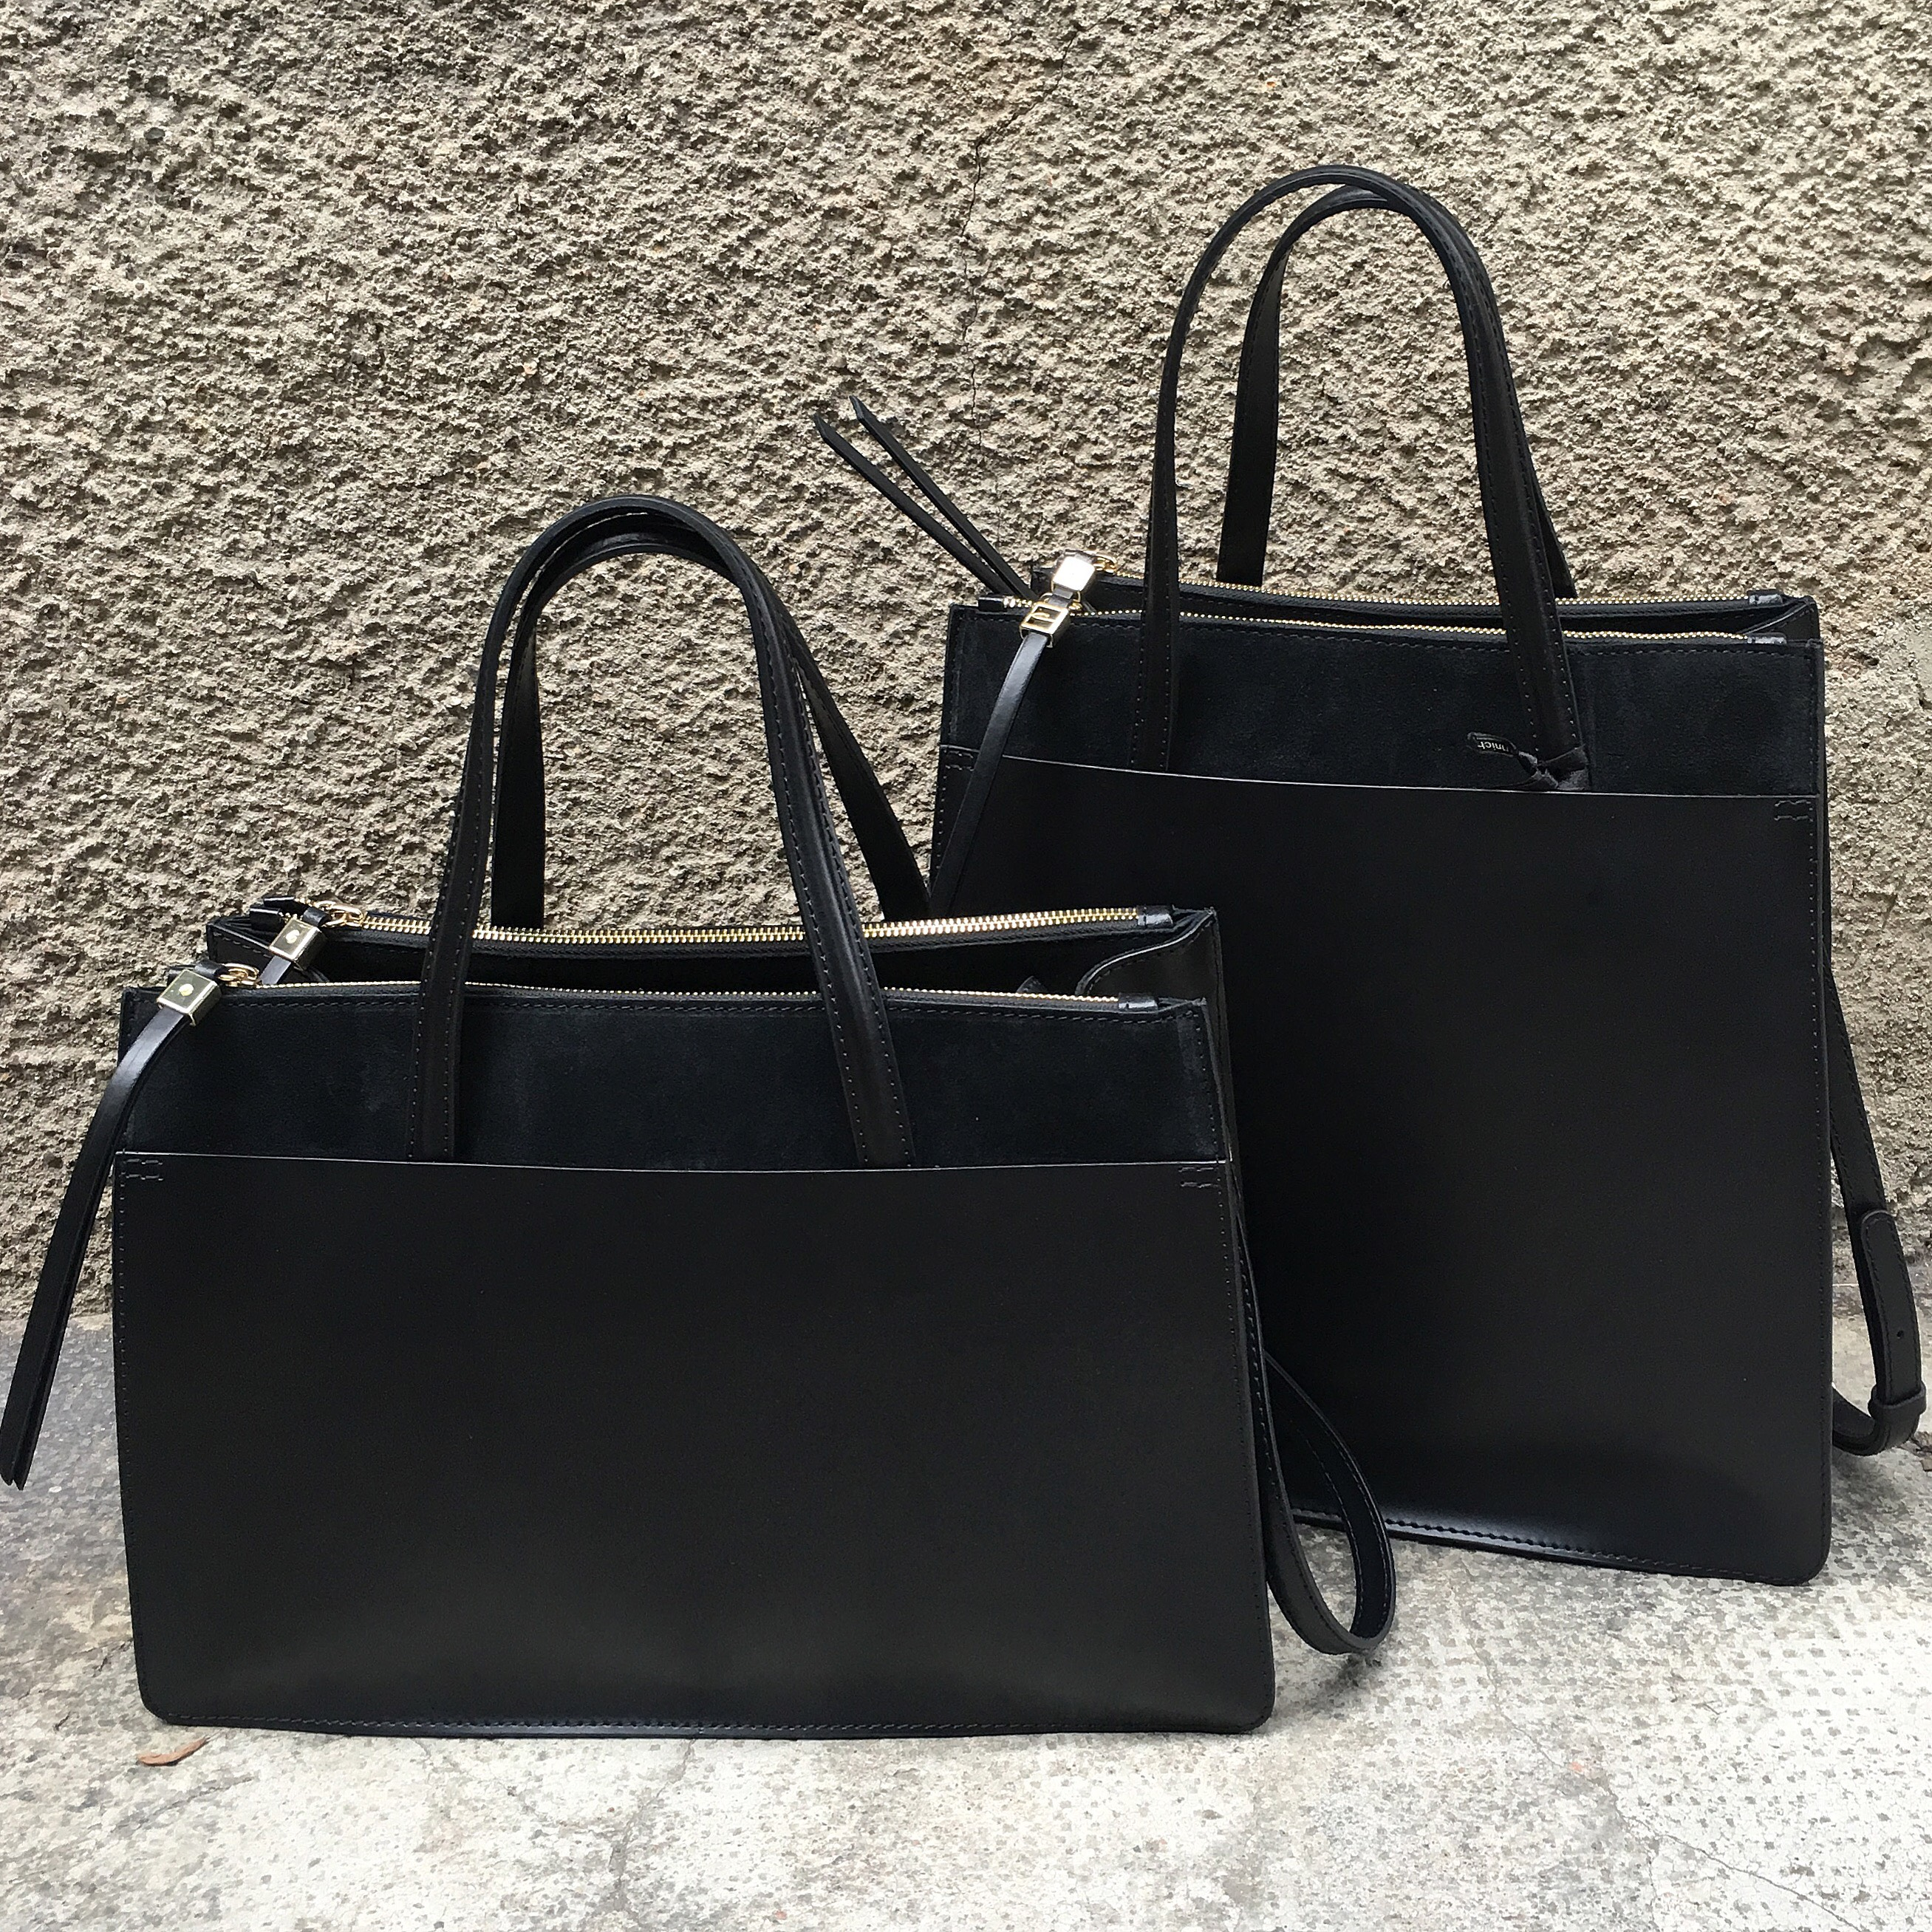 Shopping bag Gianni Chiarini